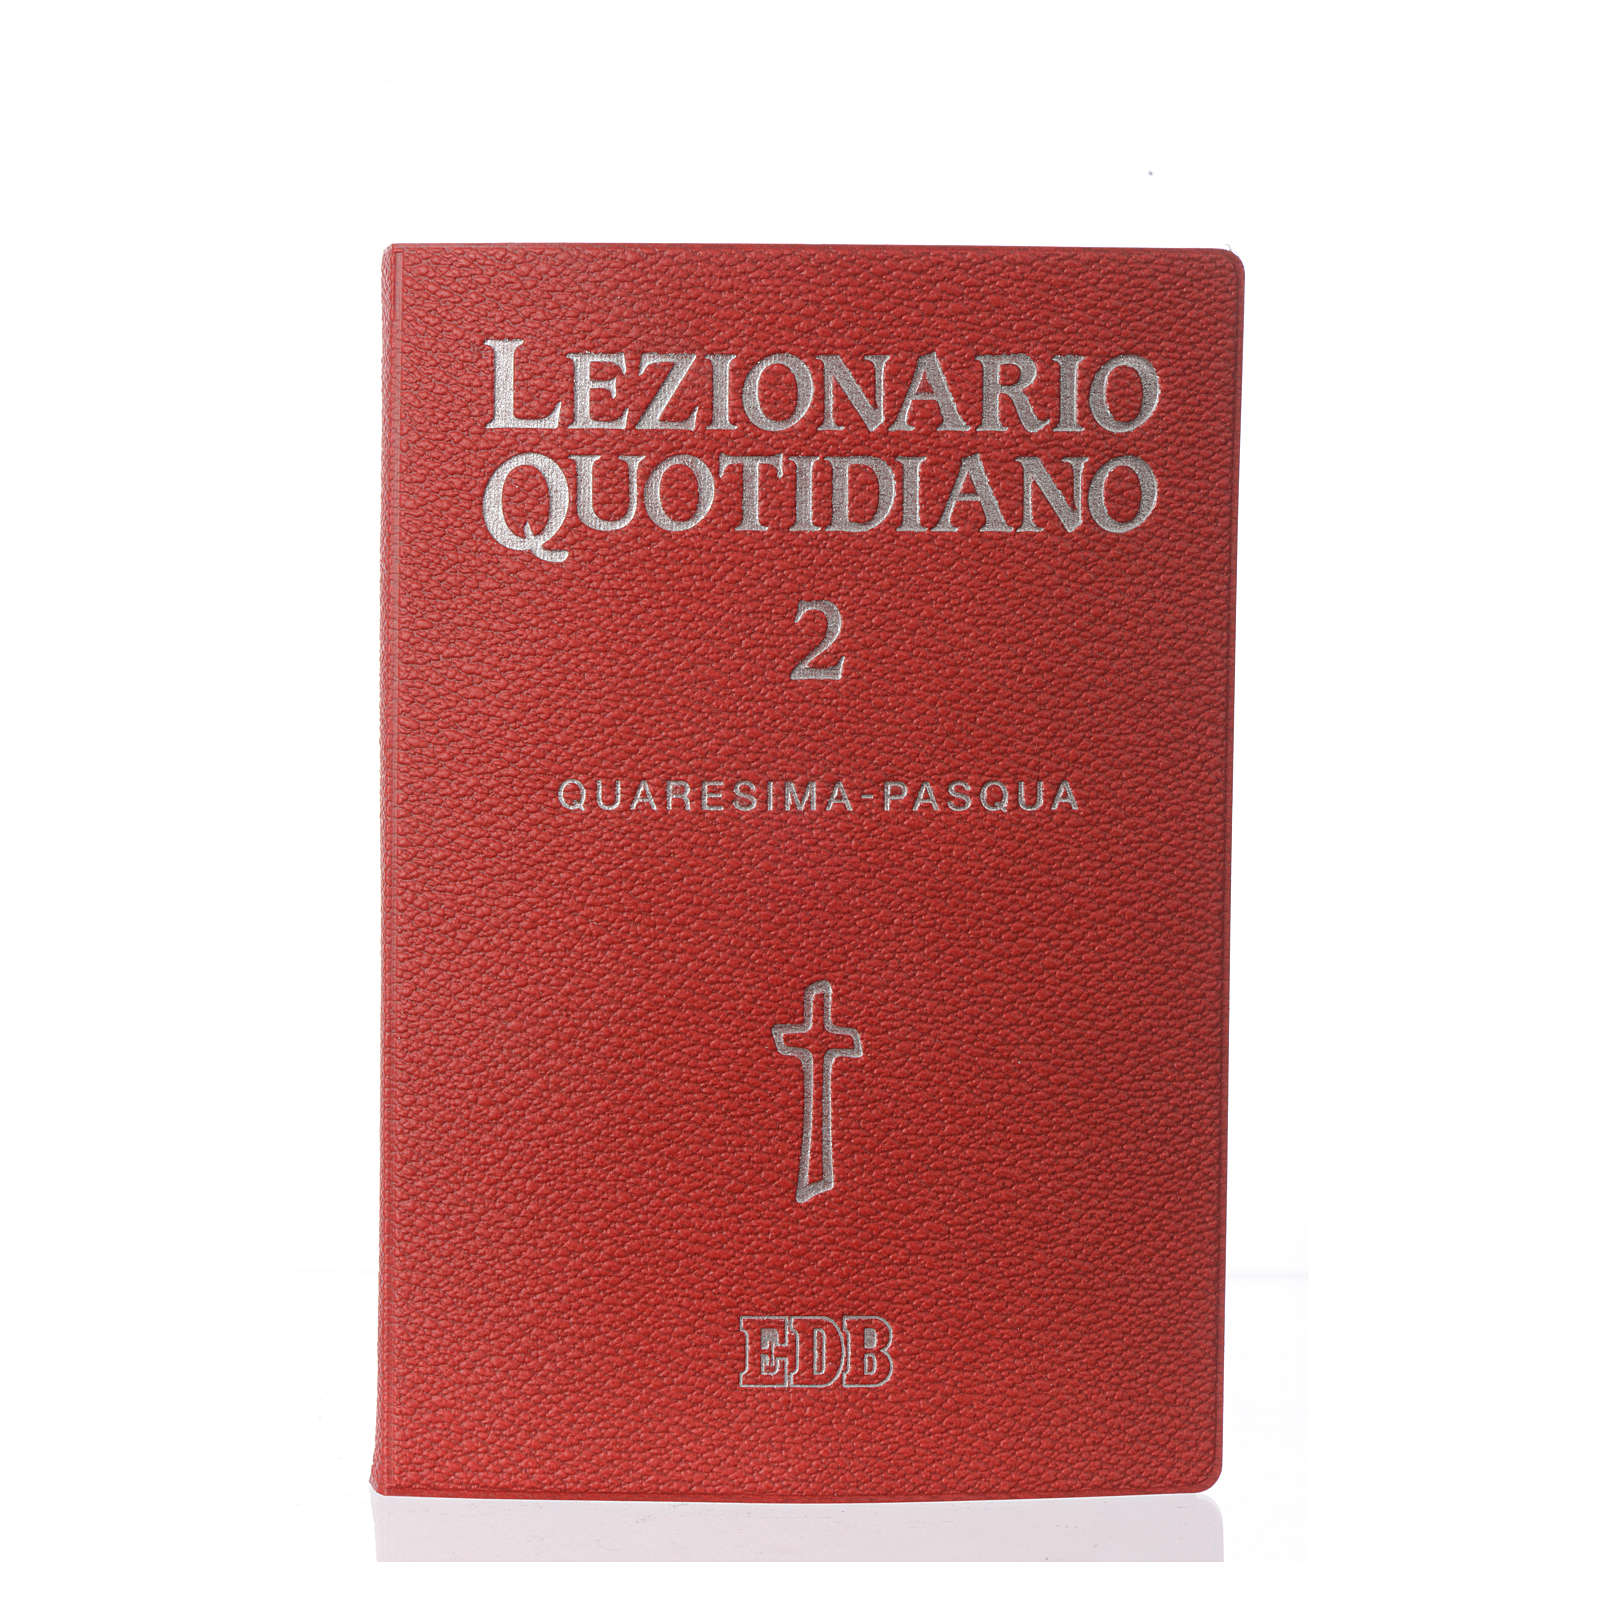 Lezionario quotidiano 2 4